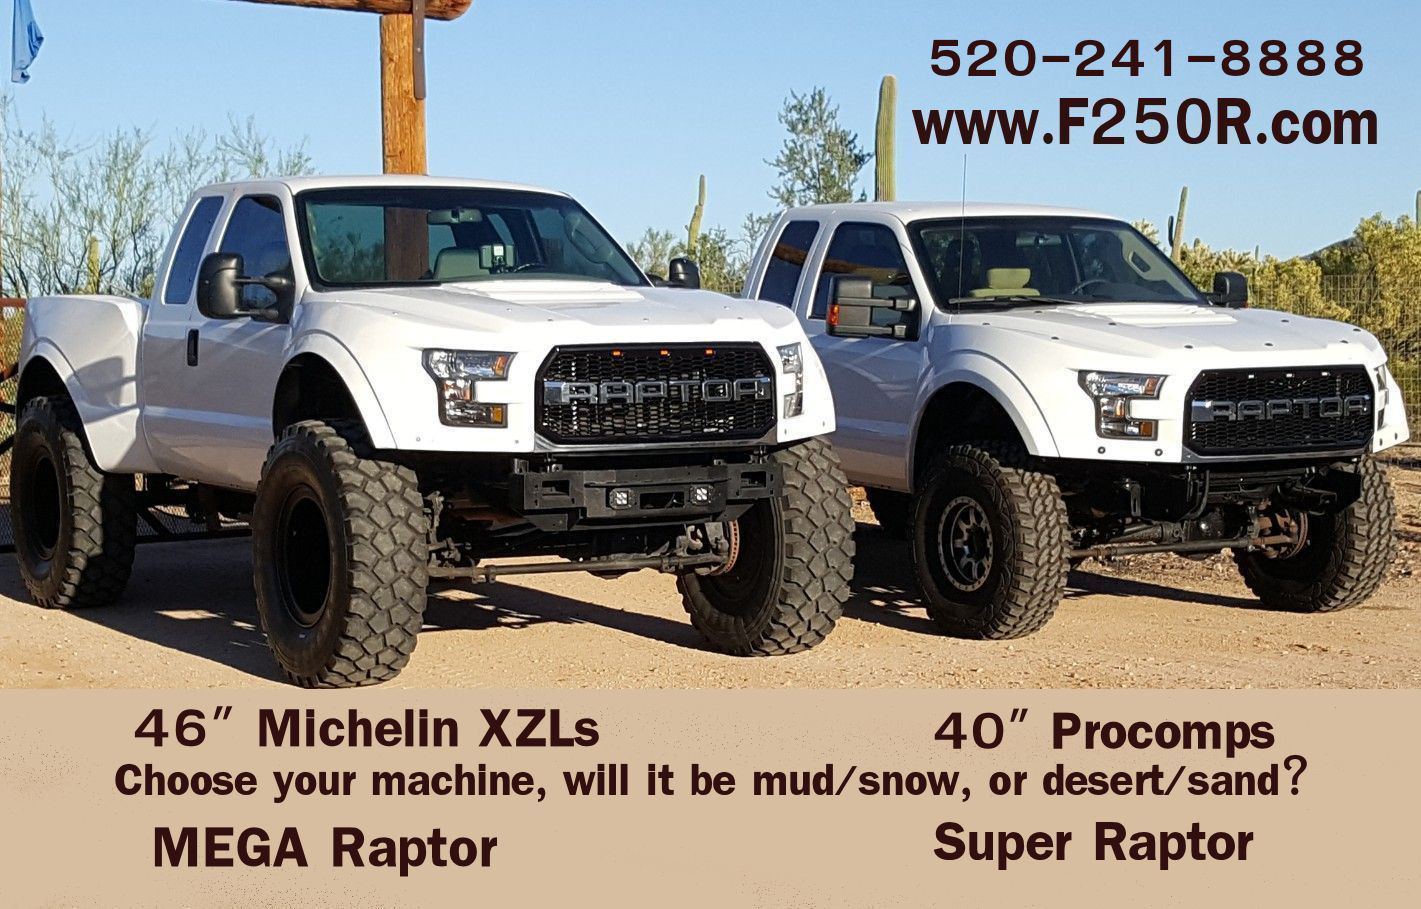 Super Duty Pickups Specifically F250r Will Take Your F 250 Or 350 And Turn It Into A Raptor In One Of Two Flavors These Trucks The